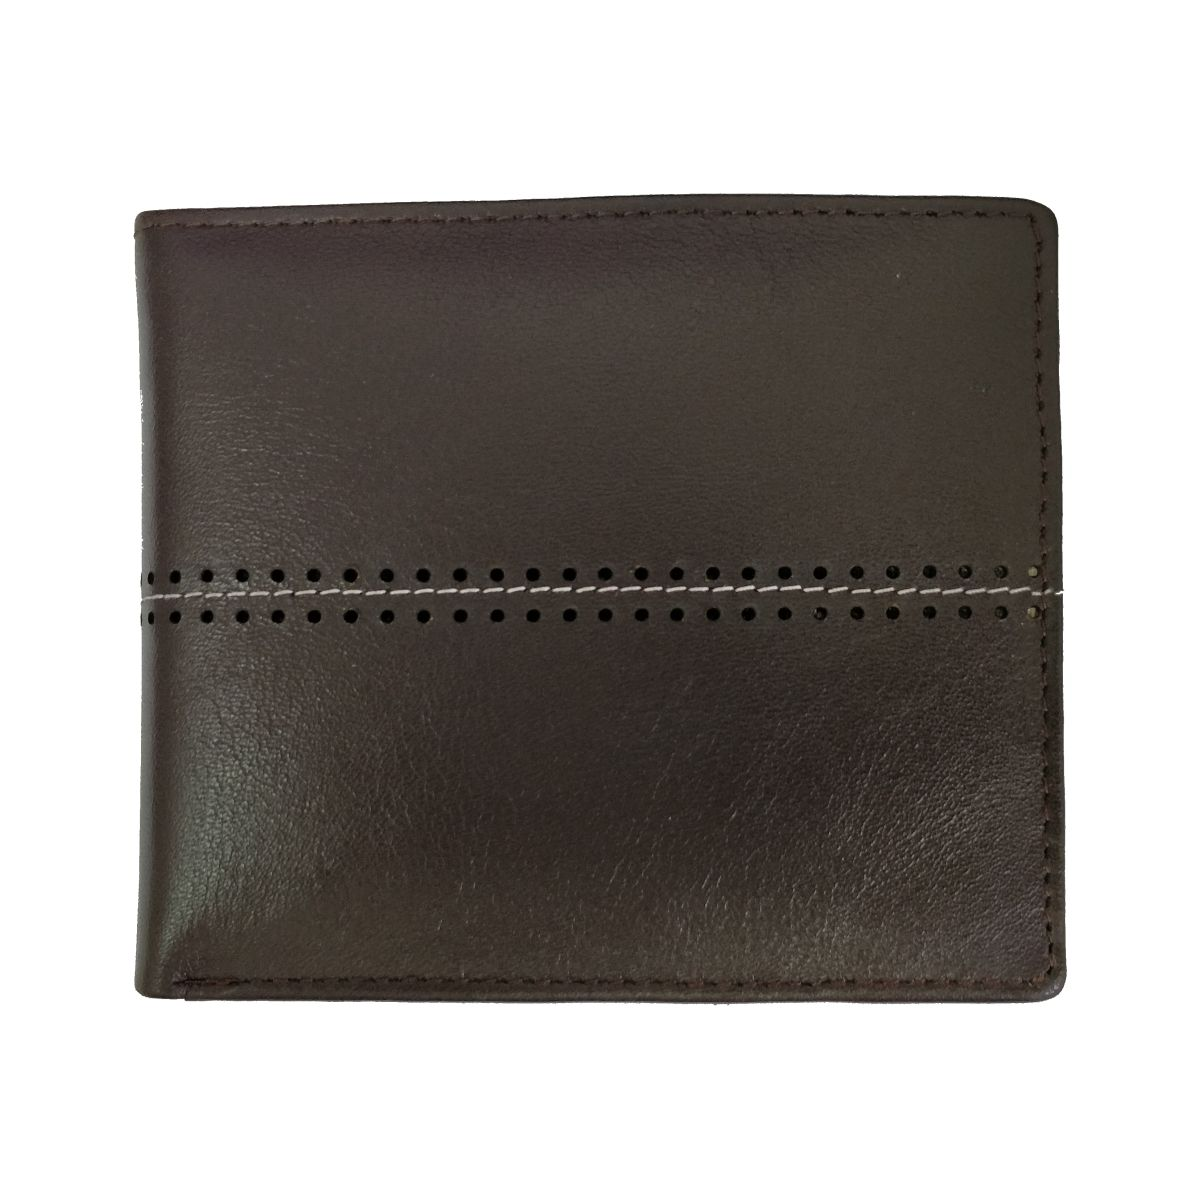 solo Leather Wallet With Horizontal Stitch and Coin Pouch - Dark Brown